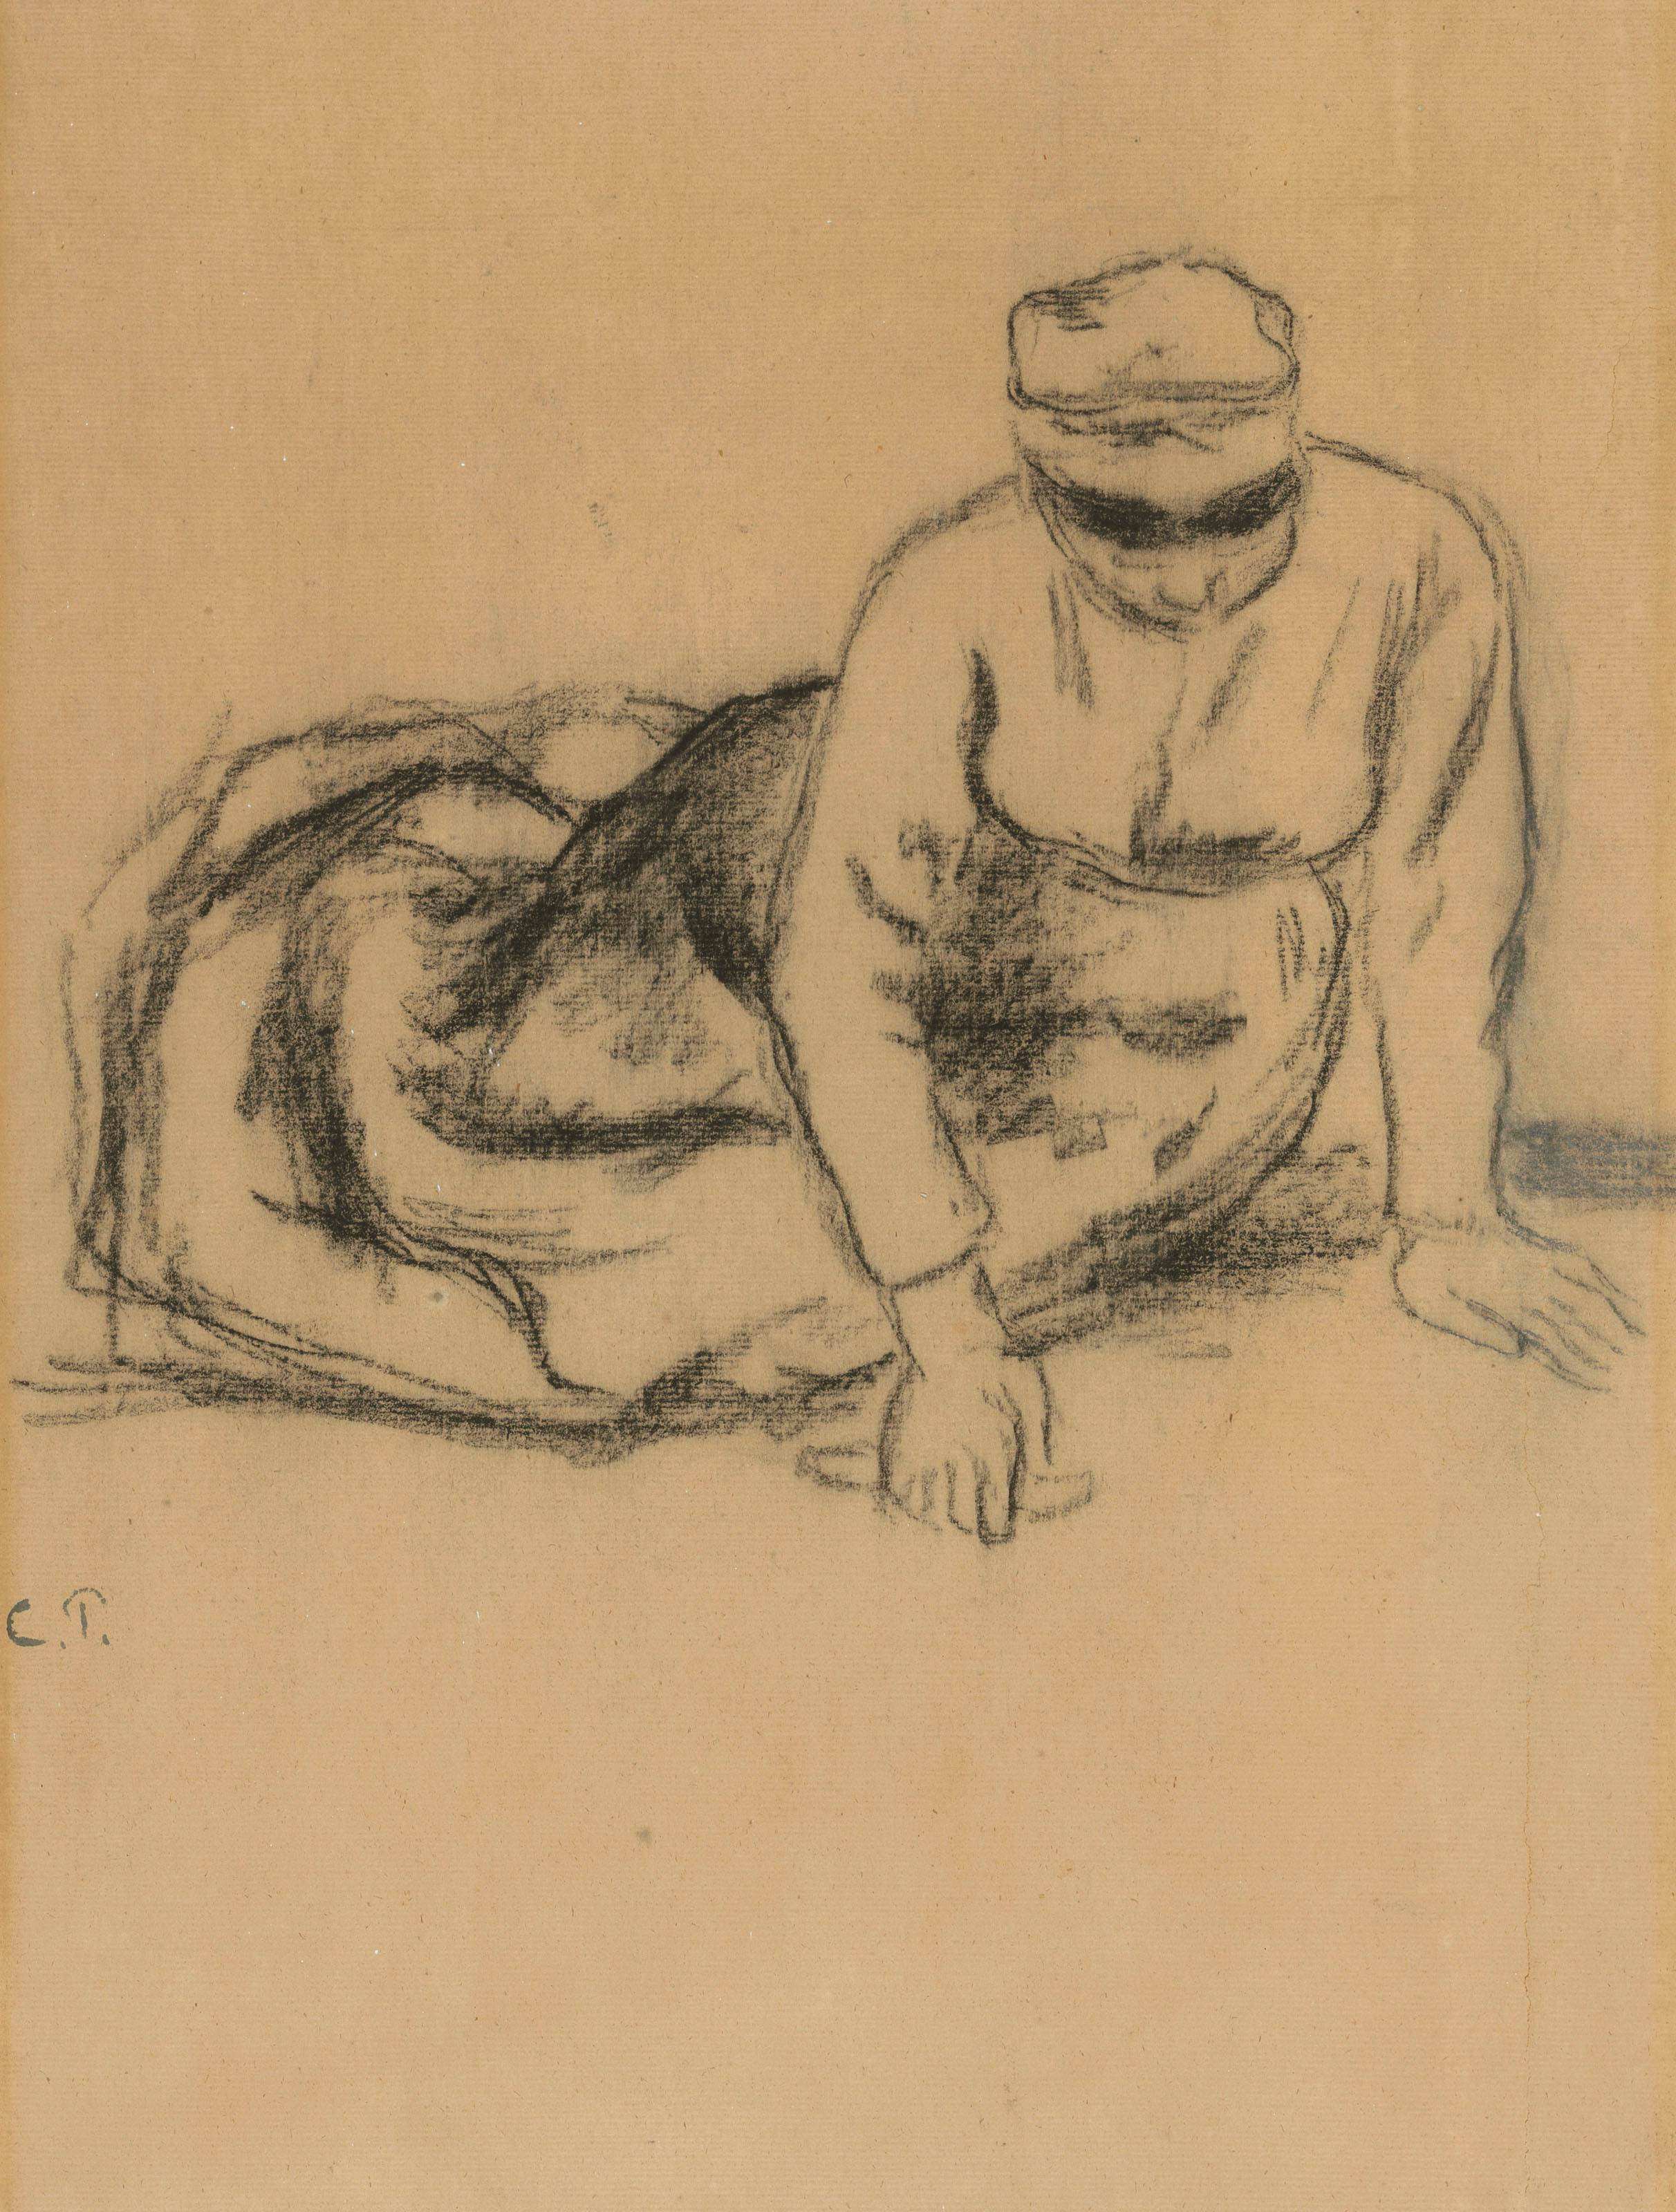 Auction Impressionist And Modern Works On Paper At 06 02 2020 Lotsearch